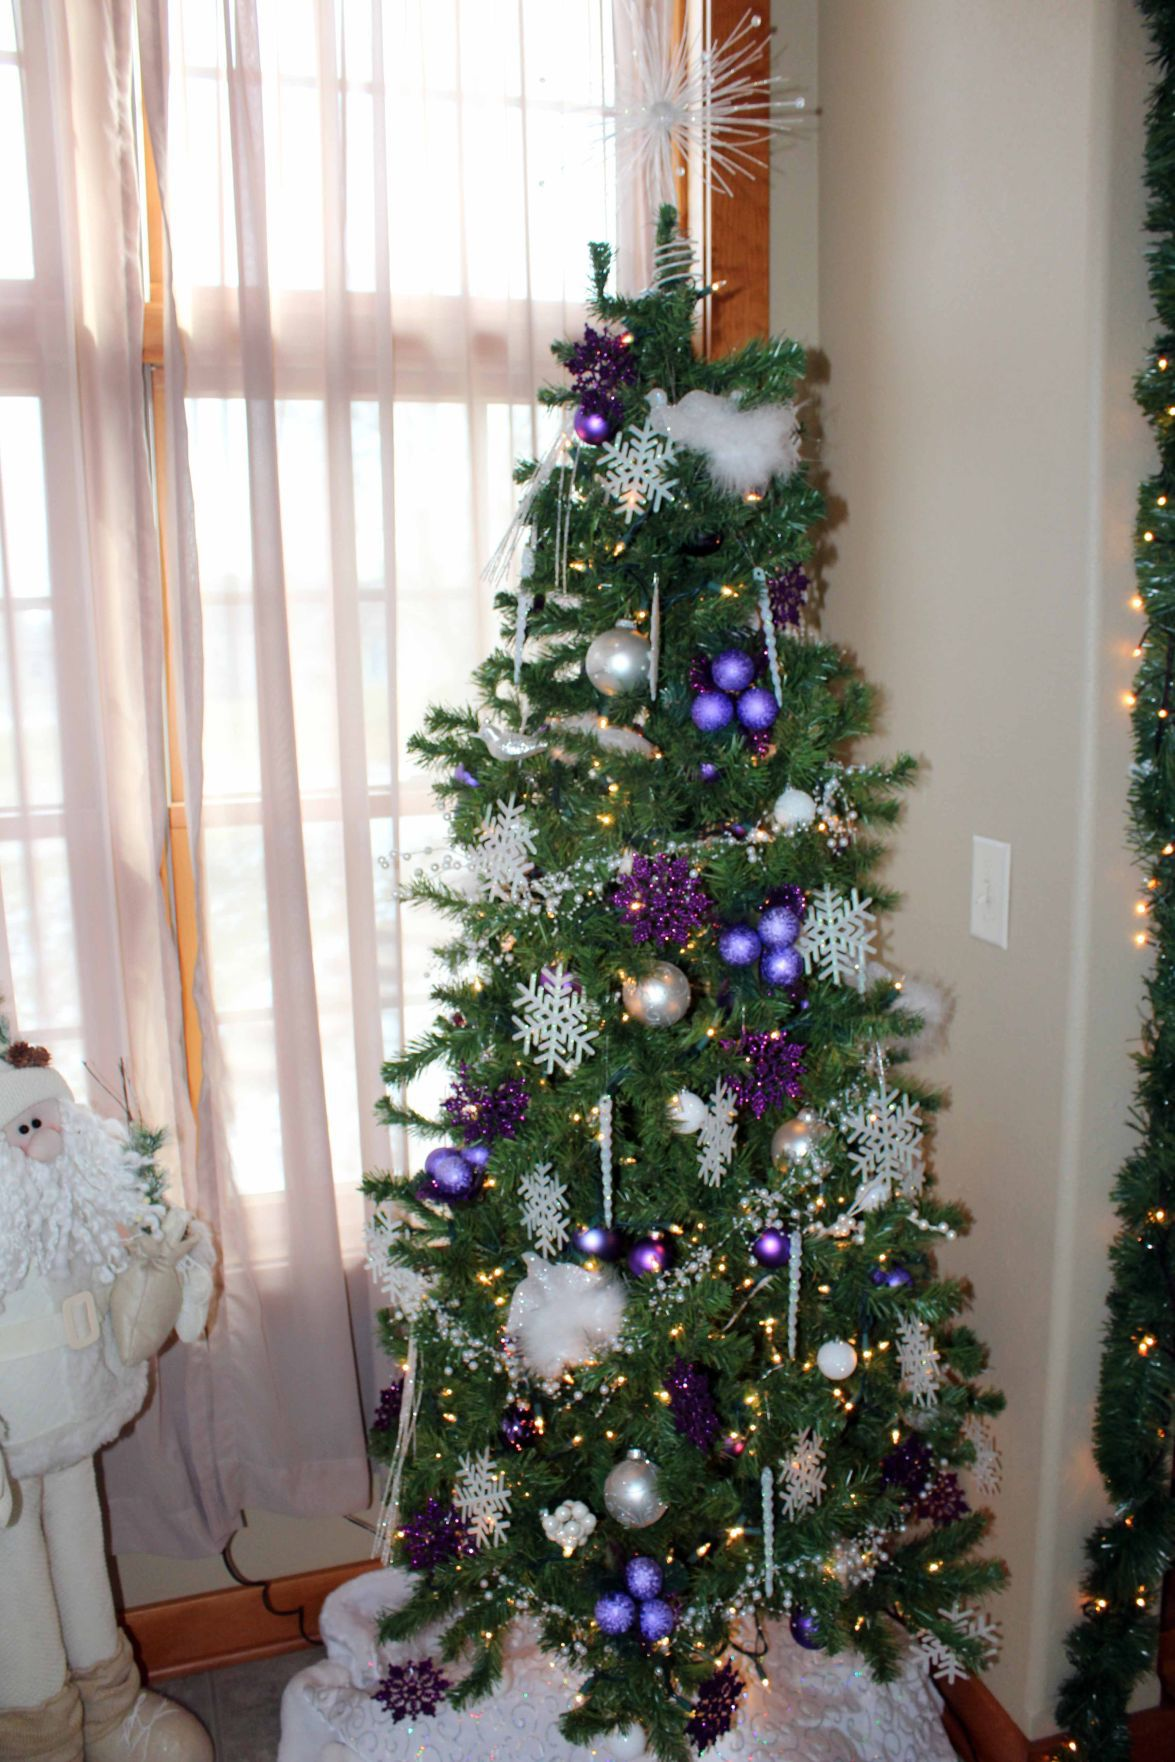 Beaver Dam woman s home decked out with 86 Christmas trees